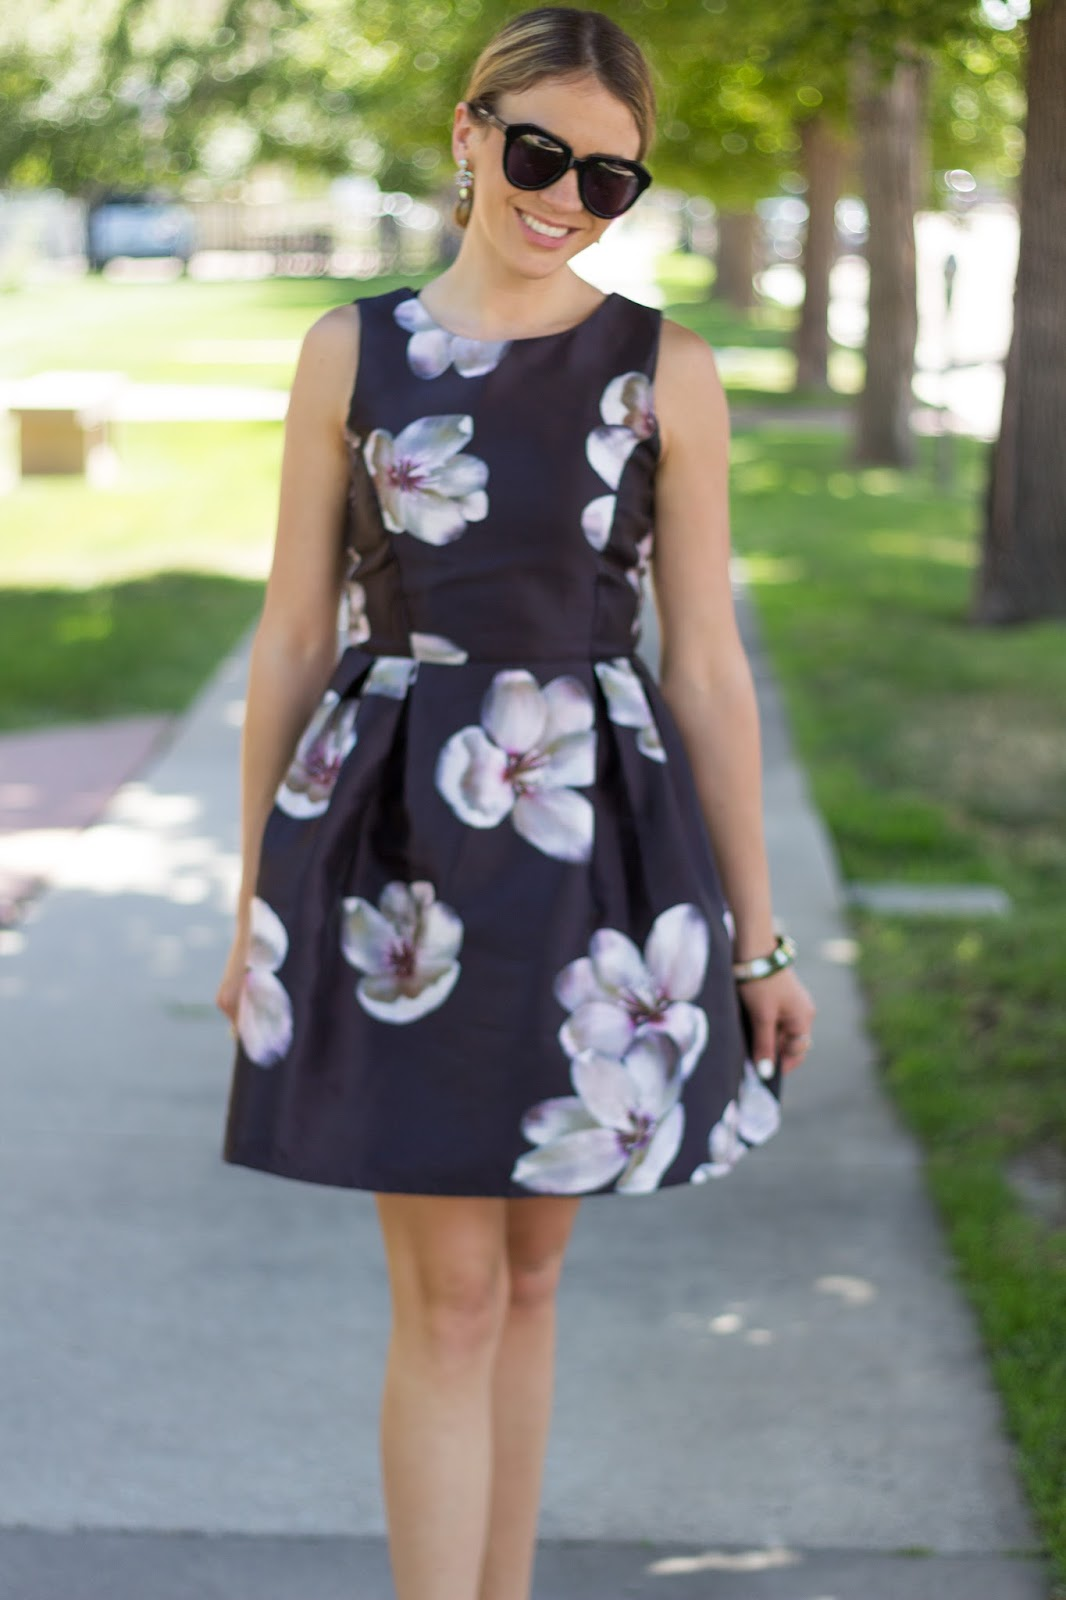 The Black Fit And Flare Frame With Lavender Lilac Colored Fl Accents Make This Dress Easy To Transition From Day Night Beyond